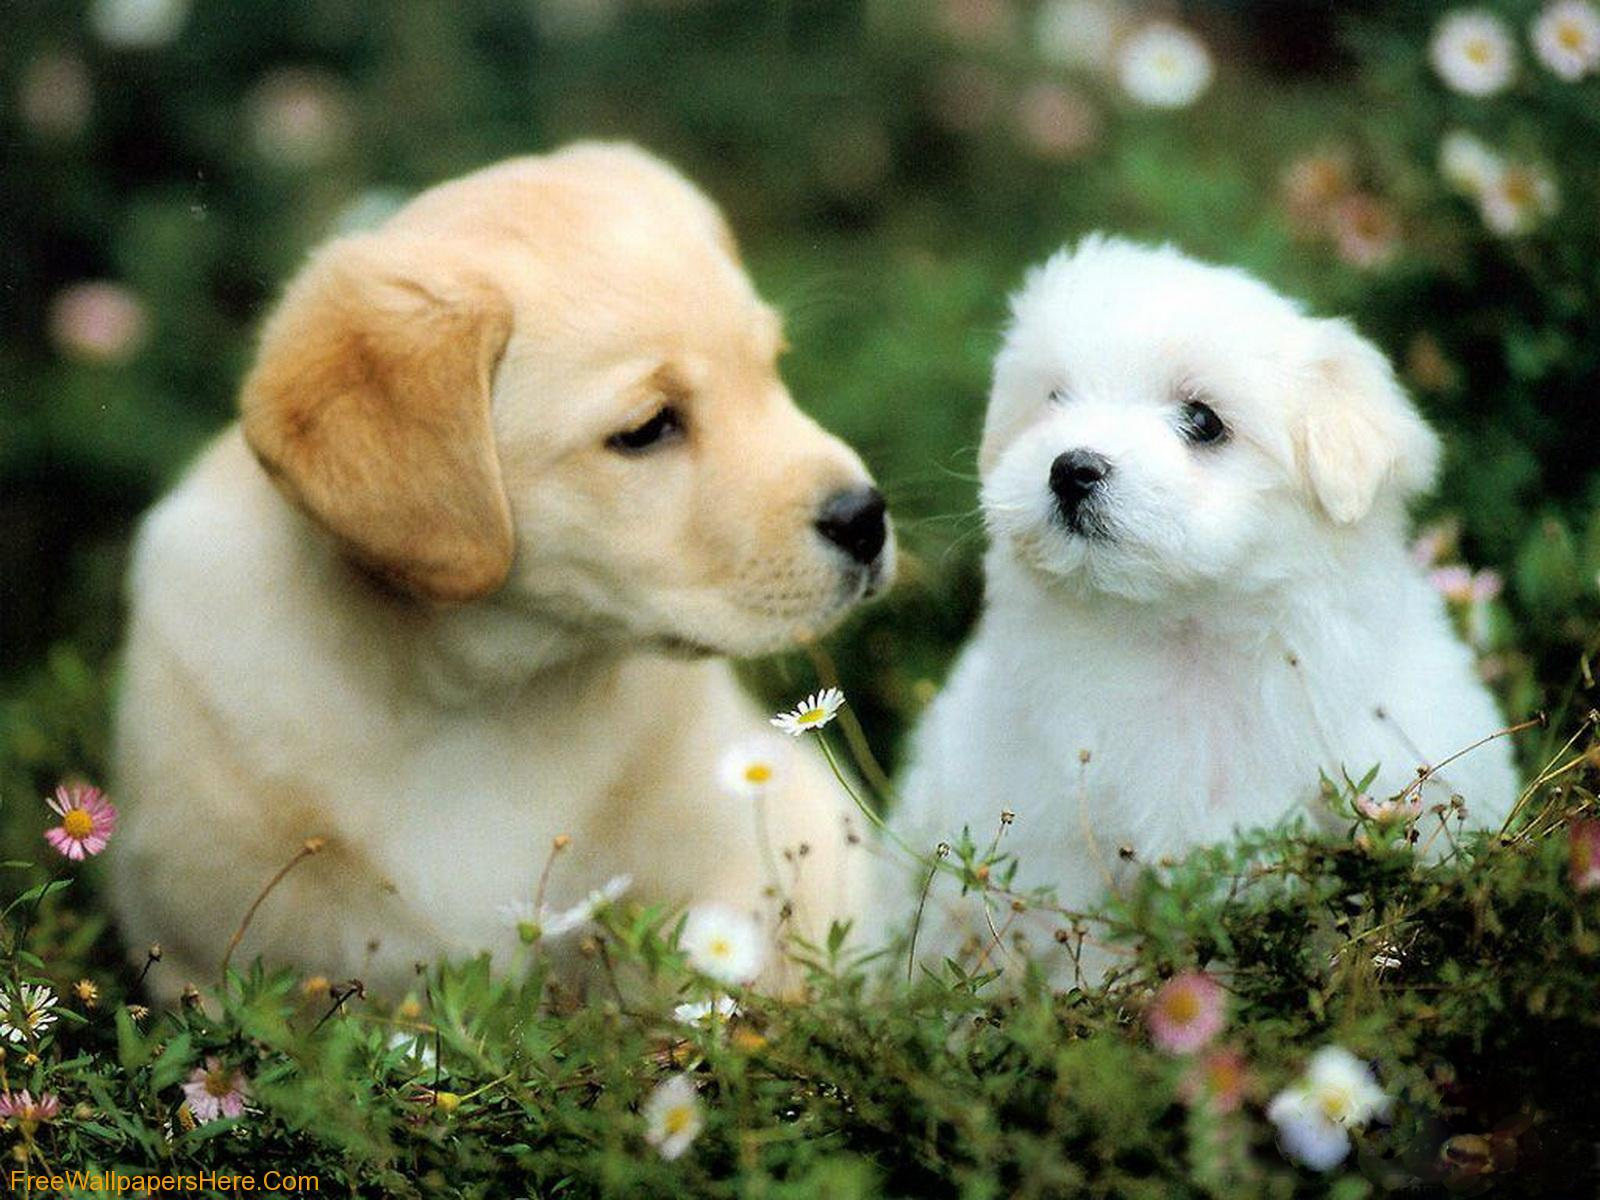 Wallpaper Gallery Cute Puppies Wallpaper 1600x1200